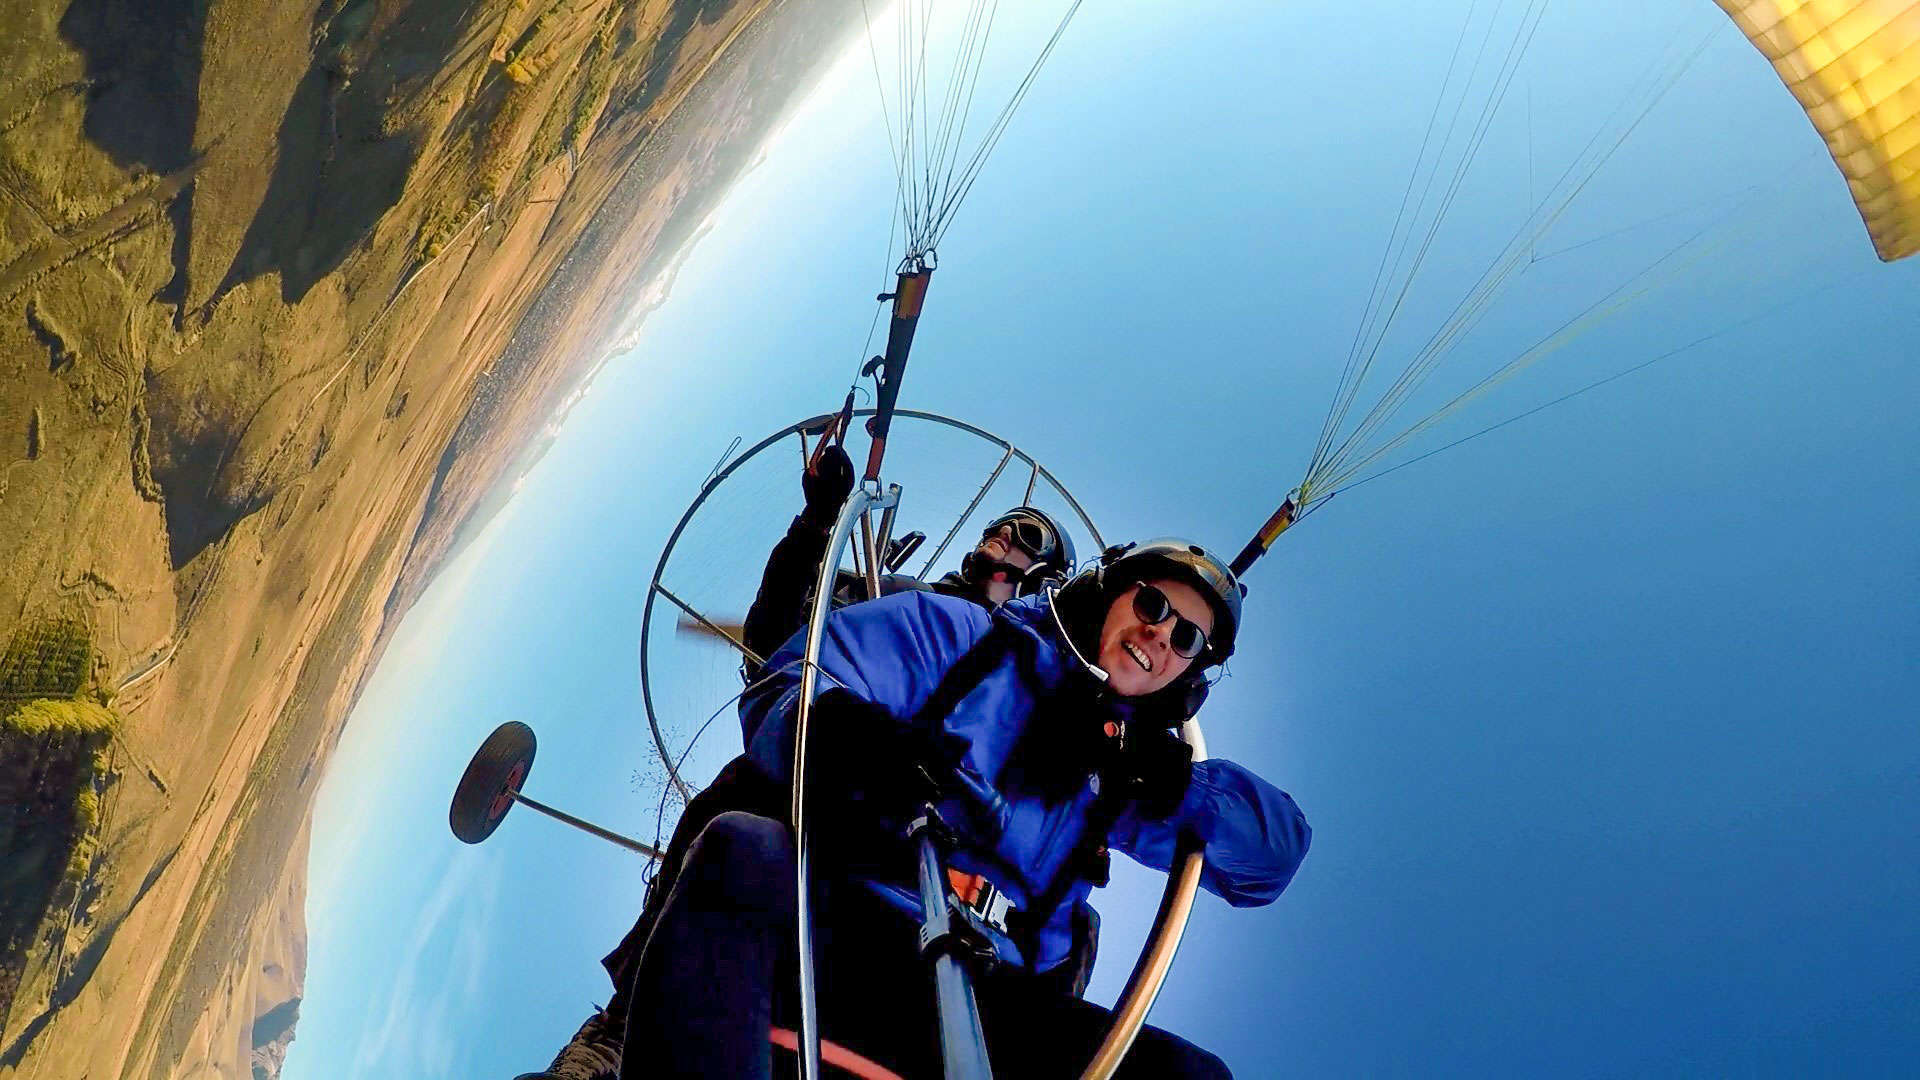 Paragliding in Armenia, Paragliding